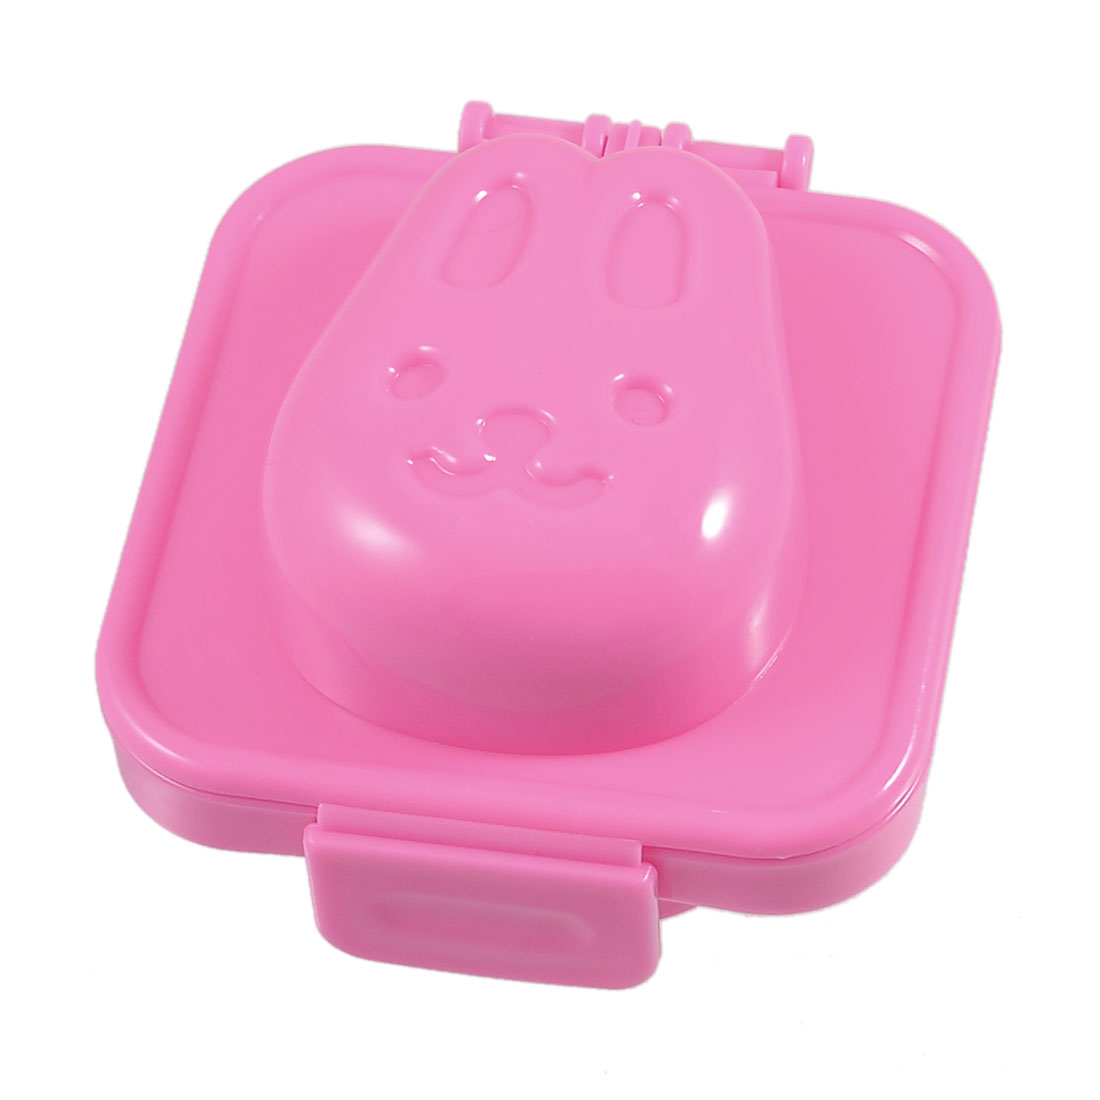 Pink Rabbit Head Design Onigiri Sushi Mold Tray Rice Ball Maker